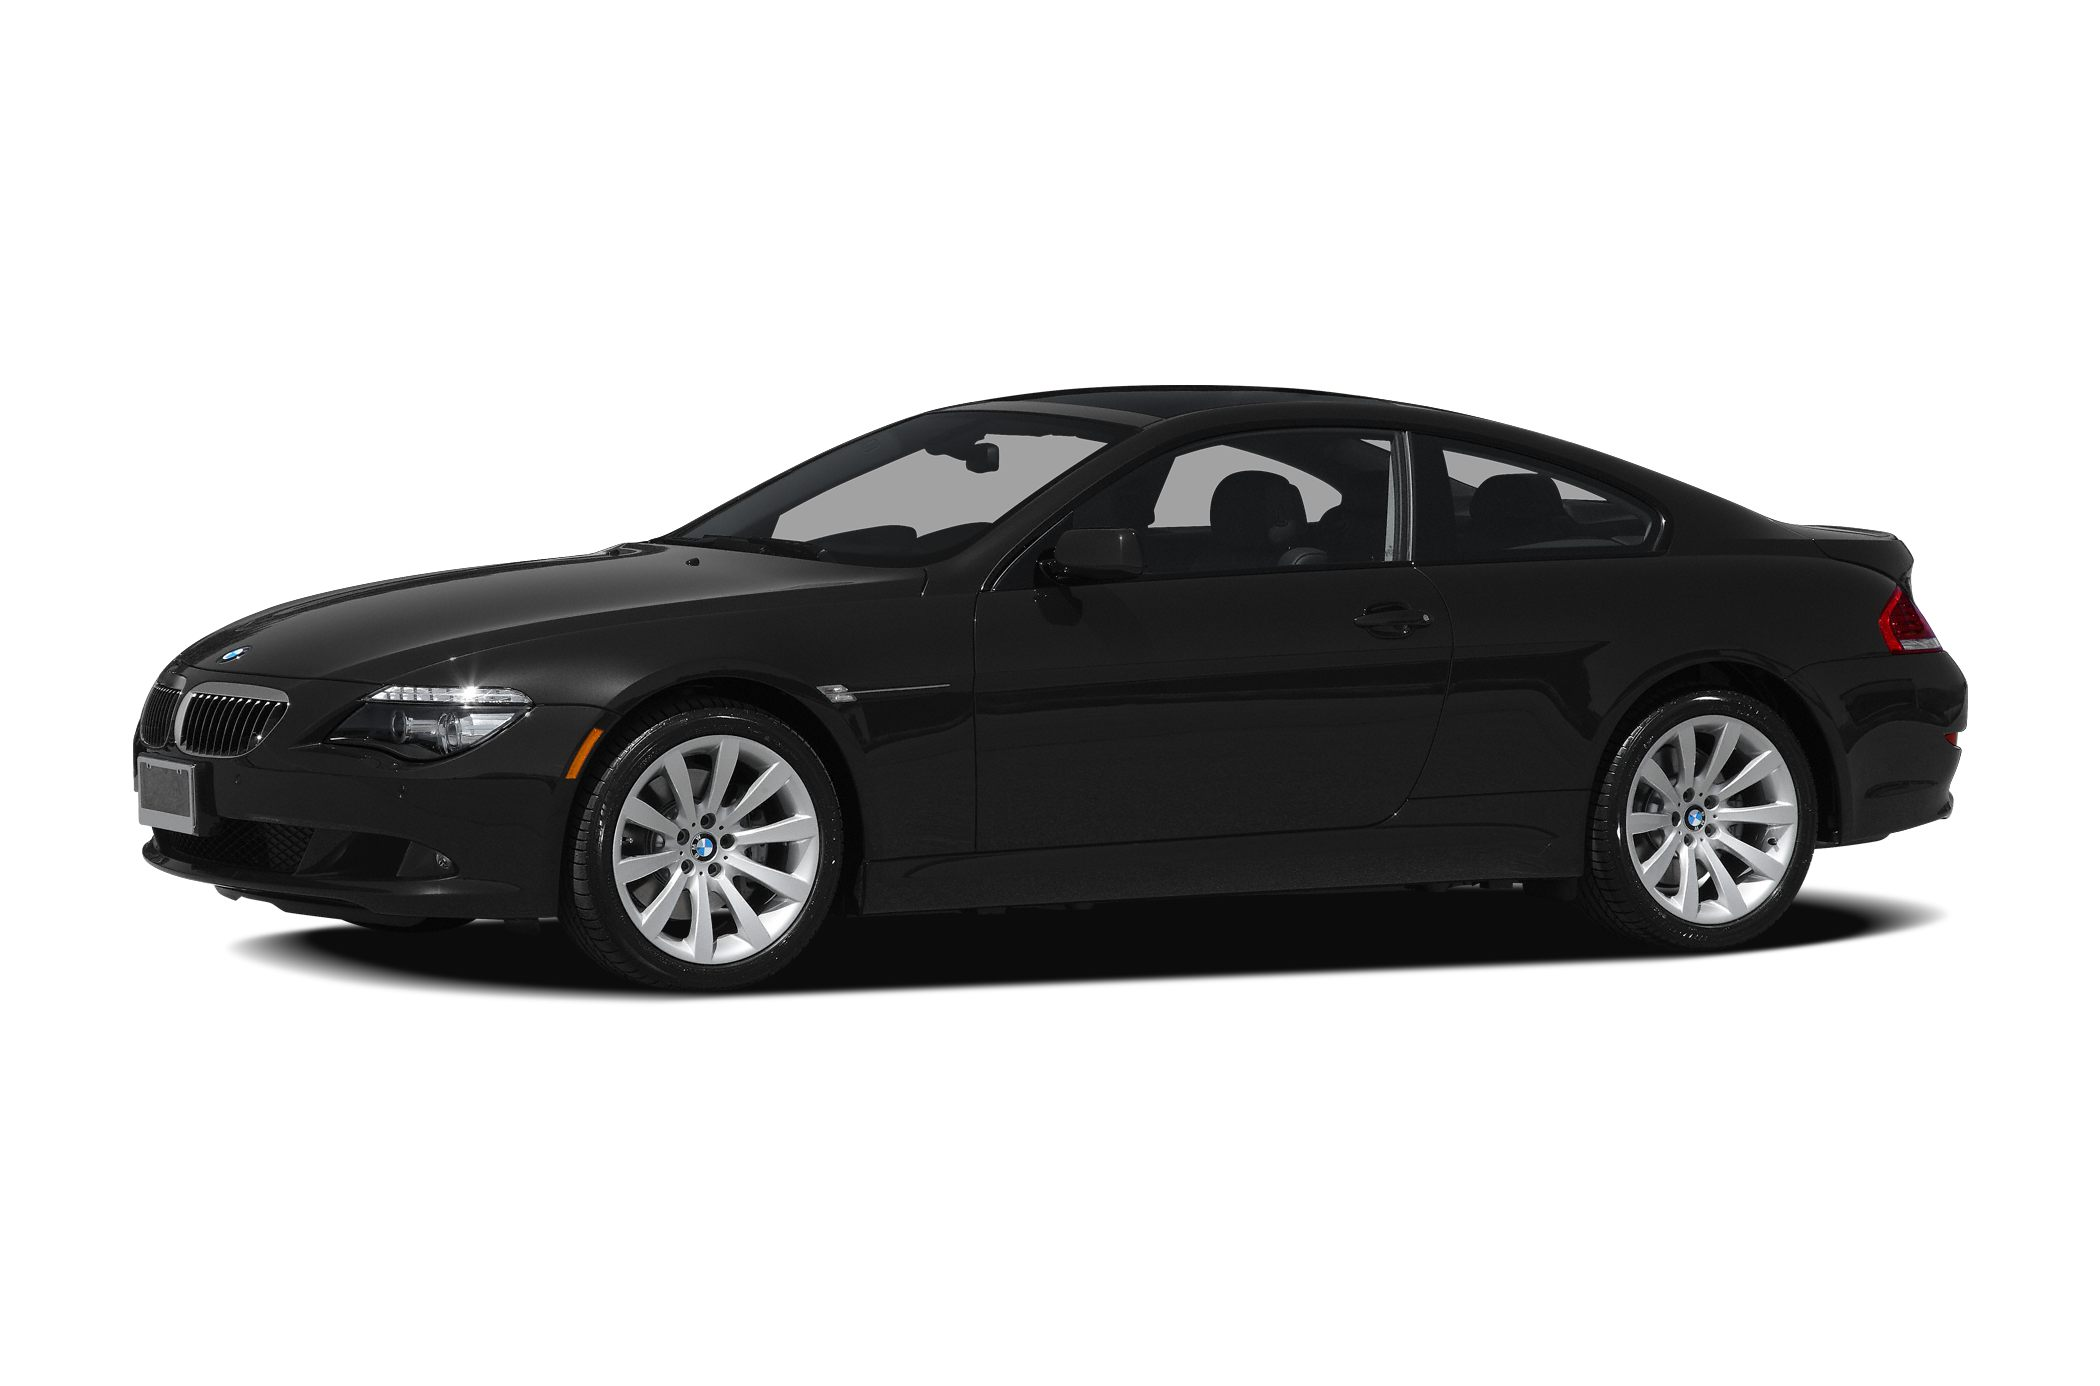 2010 BMW 650 I Coupe for sale in West Chester for $37,992 with 44,185 miles.